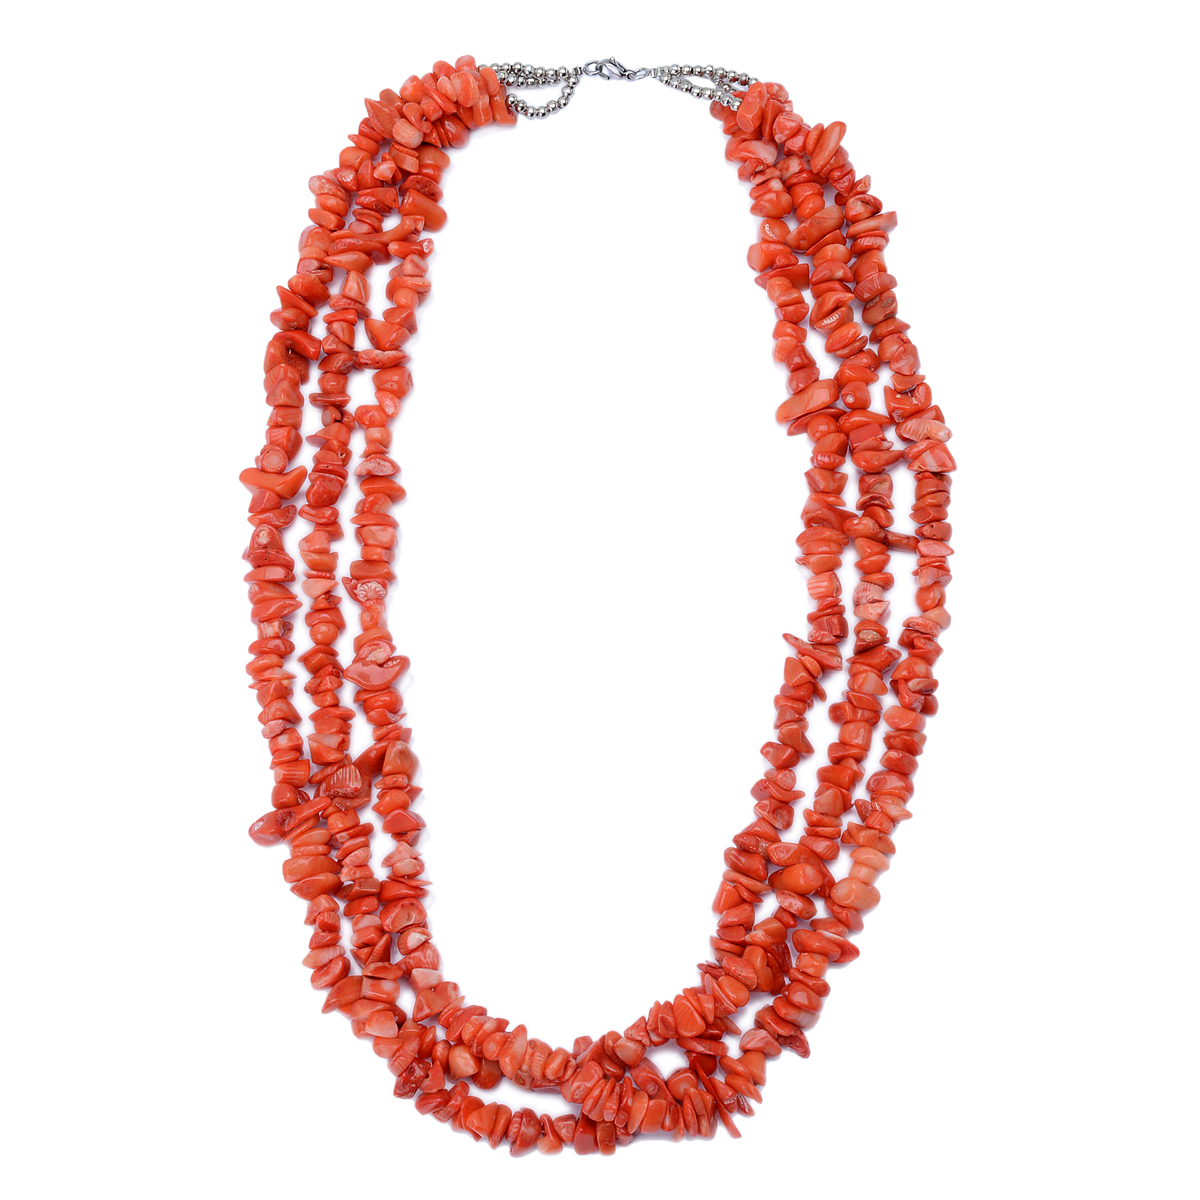 Bamboo Coral Triple Strand Necklace (22 in) in Silvertone TGW 155.000 cts.